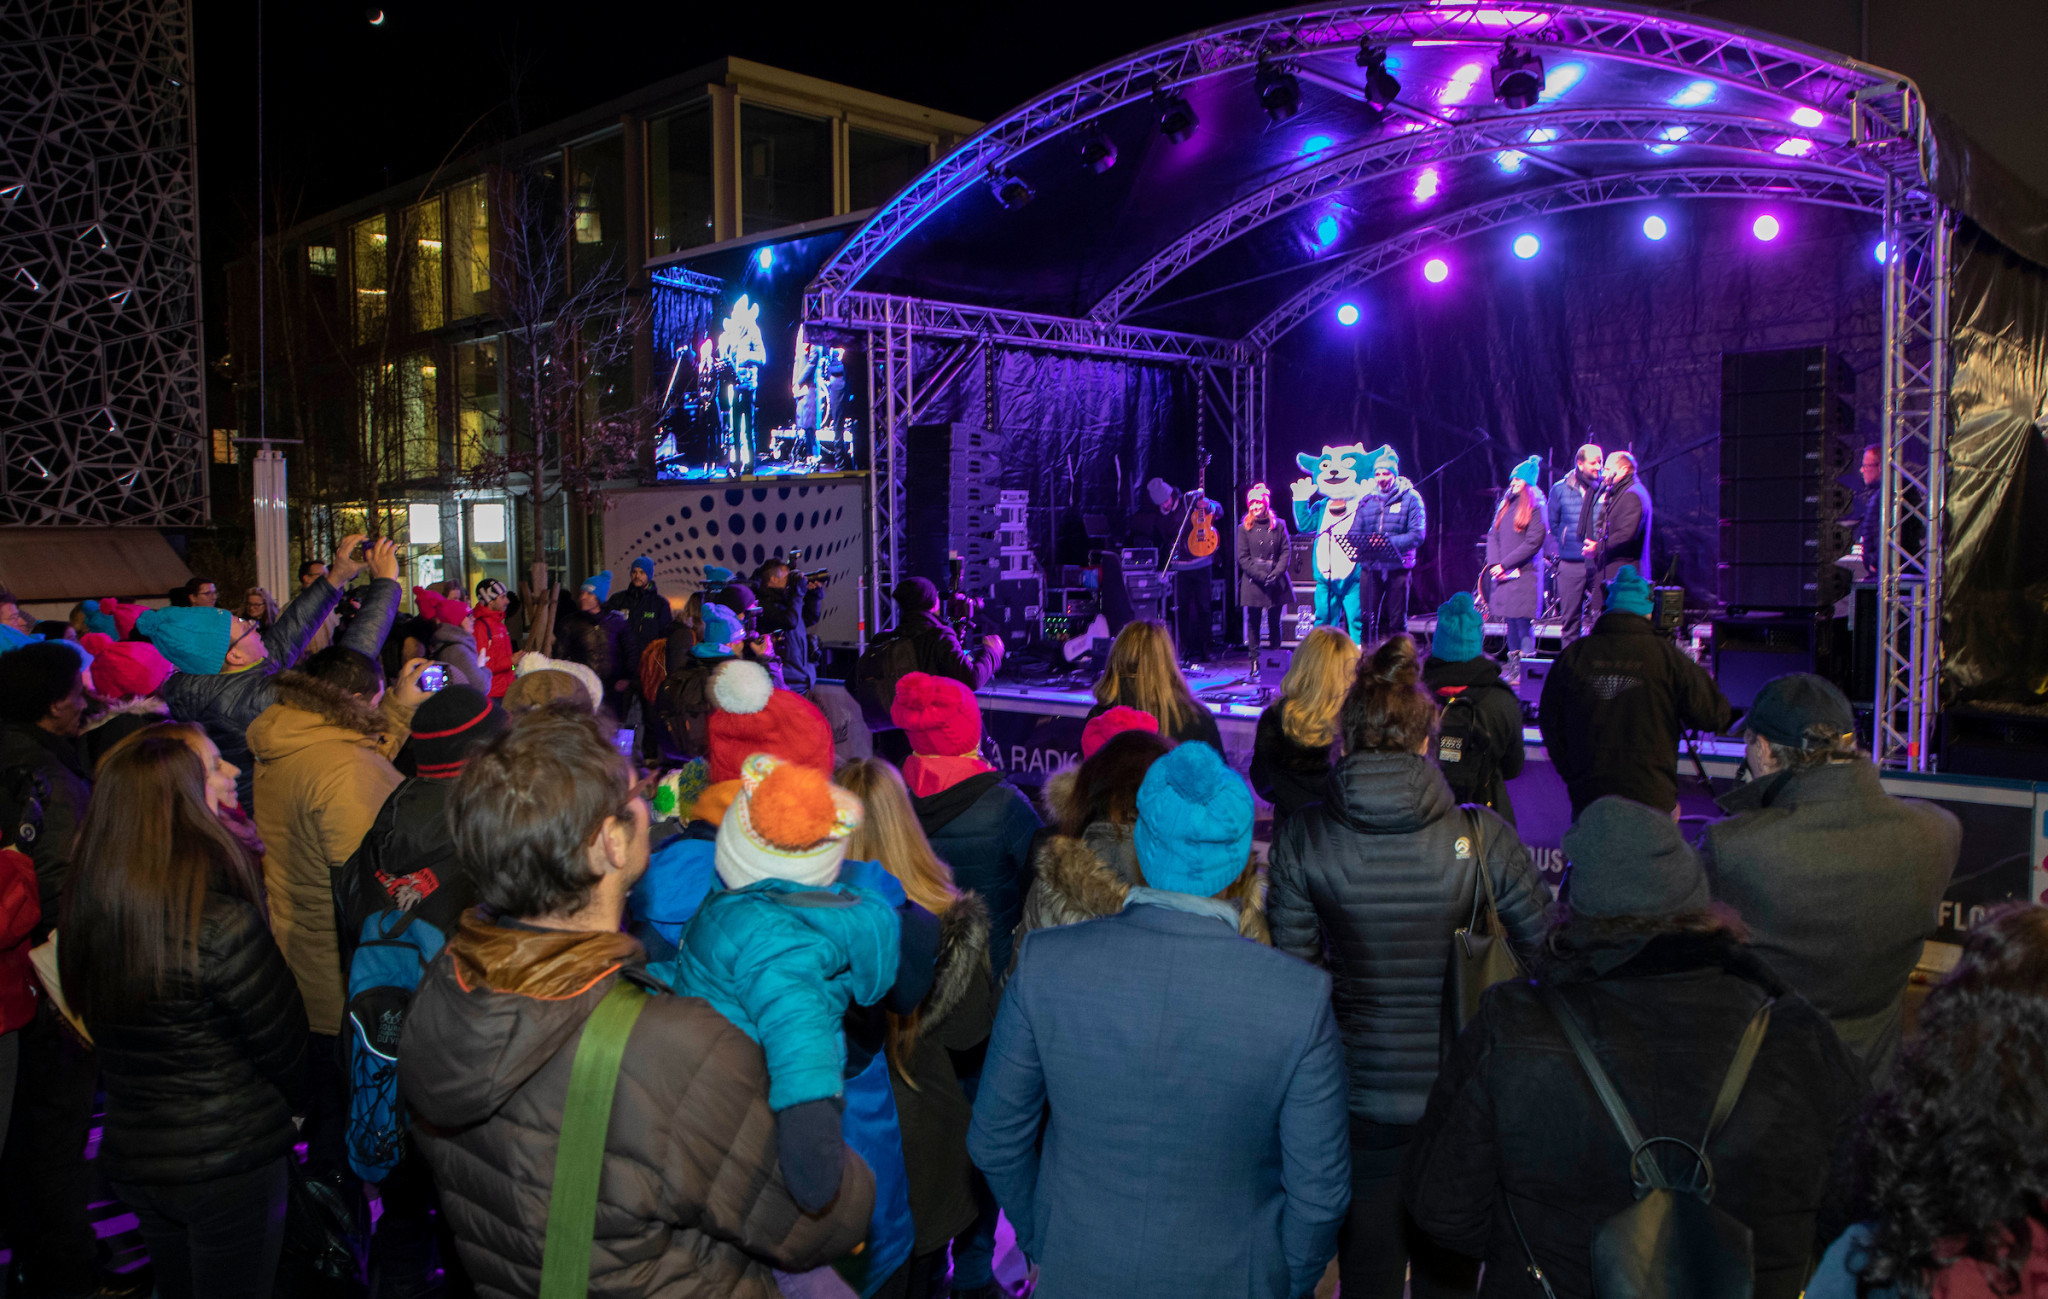 The event was held on the medal plaza for the Lausanne 2020 Winter Youth Olympic Games ©IOC